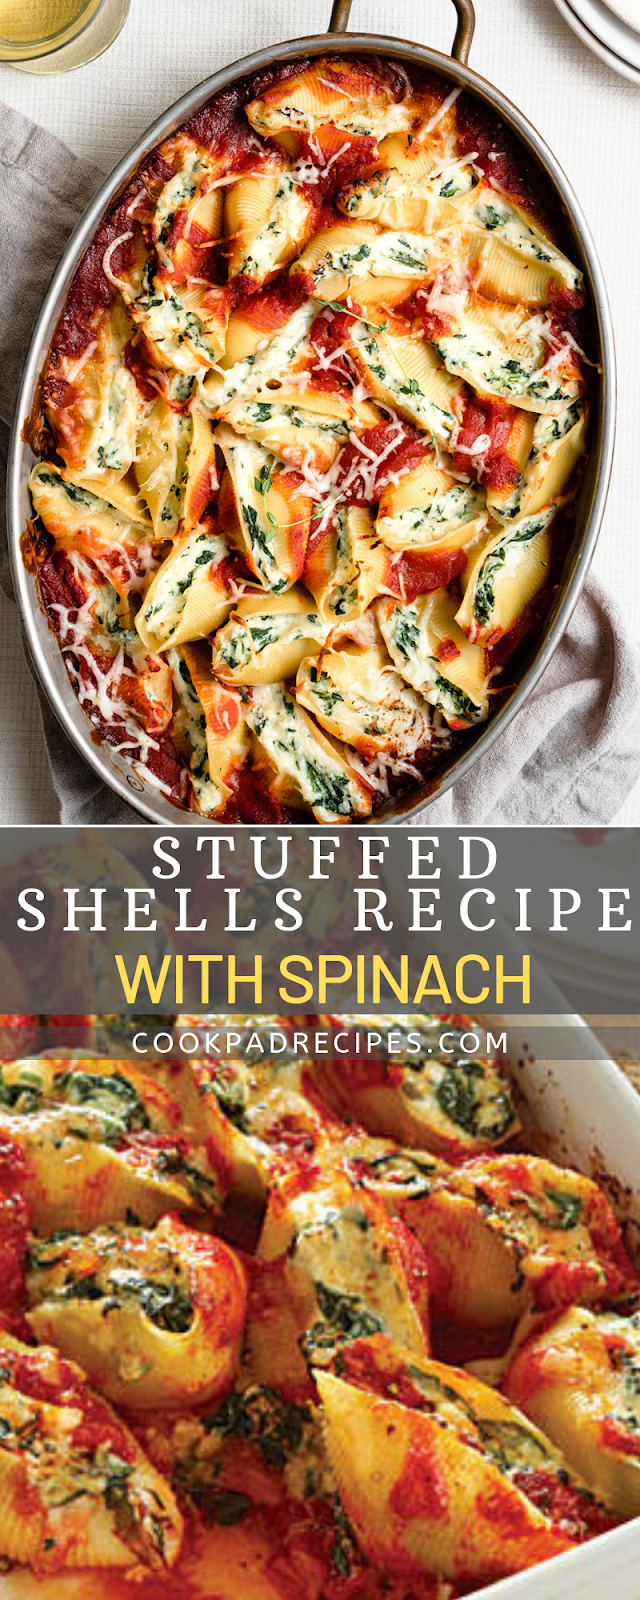 Stuffеd Shеllѕ with Spinach